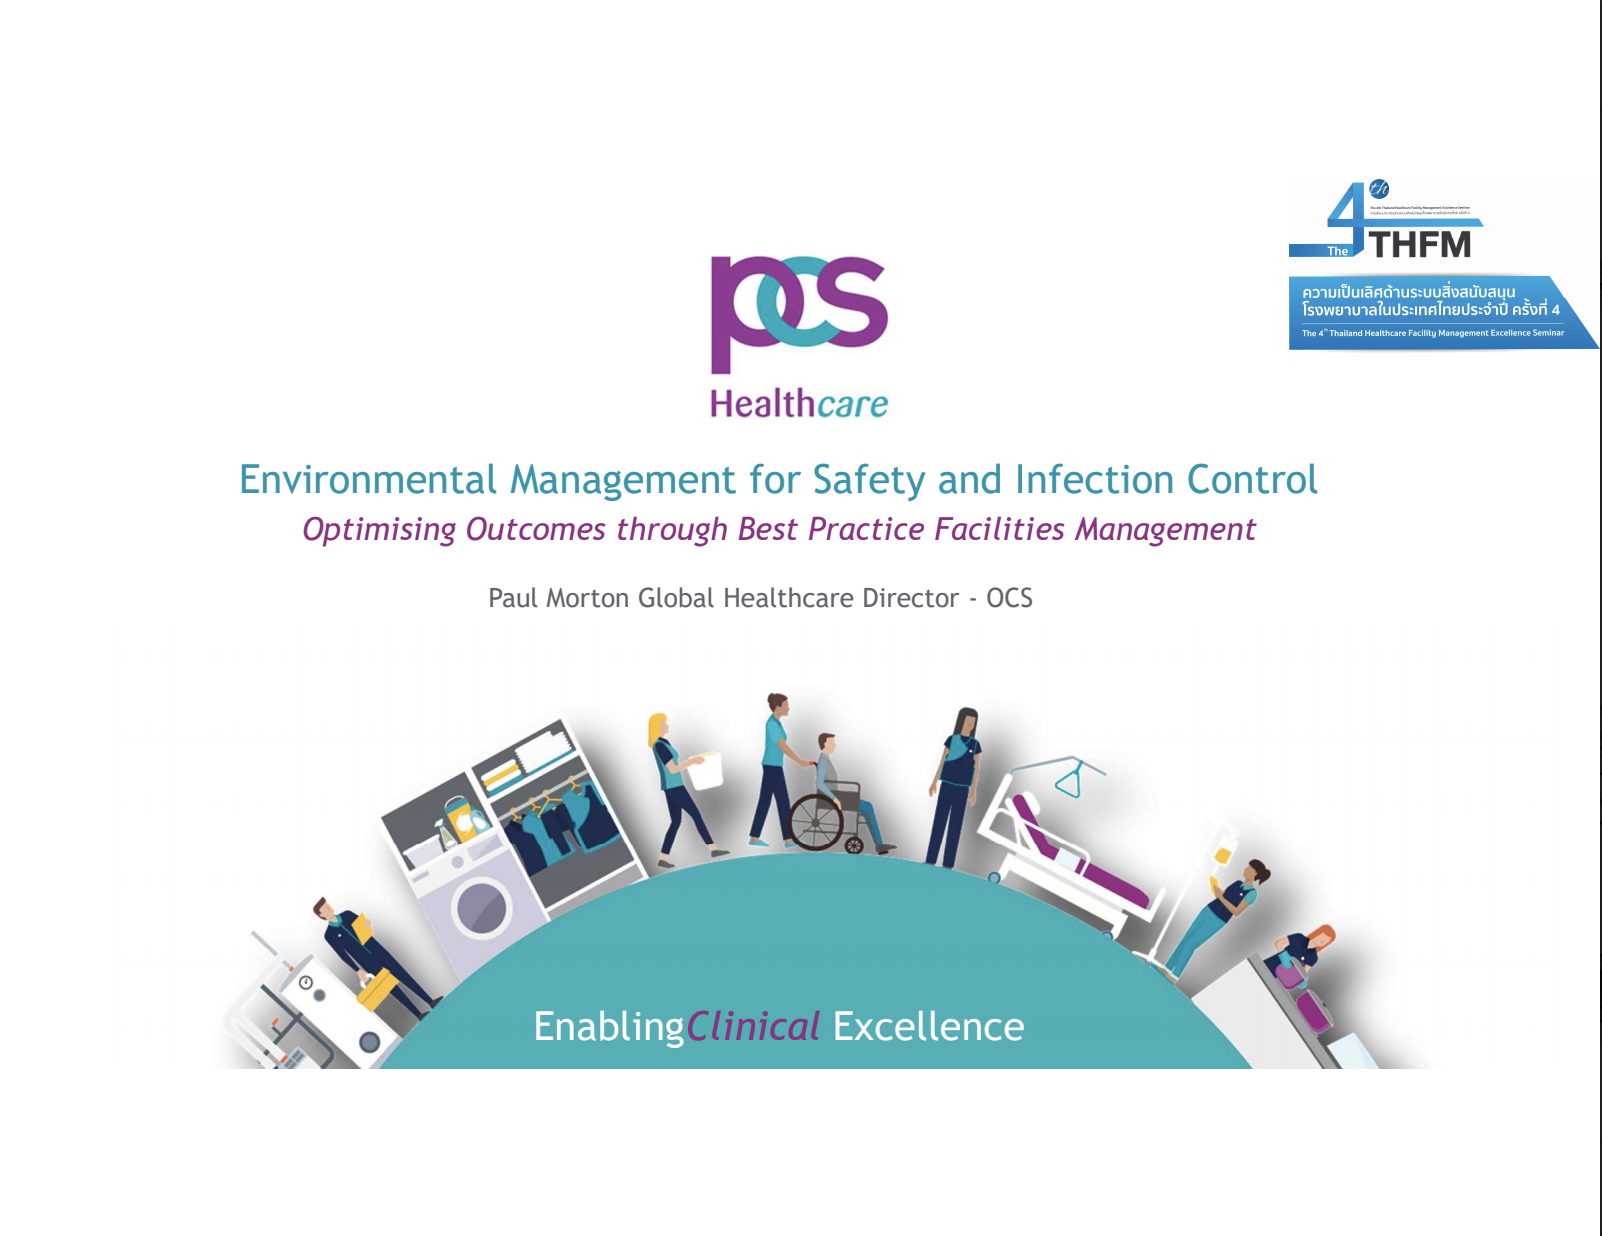 Environmental Management for Safety and Infection Control